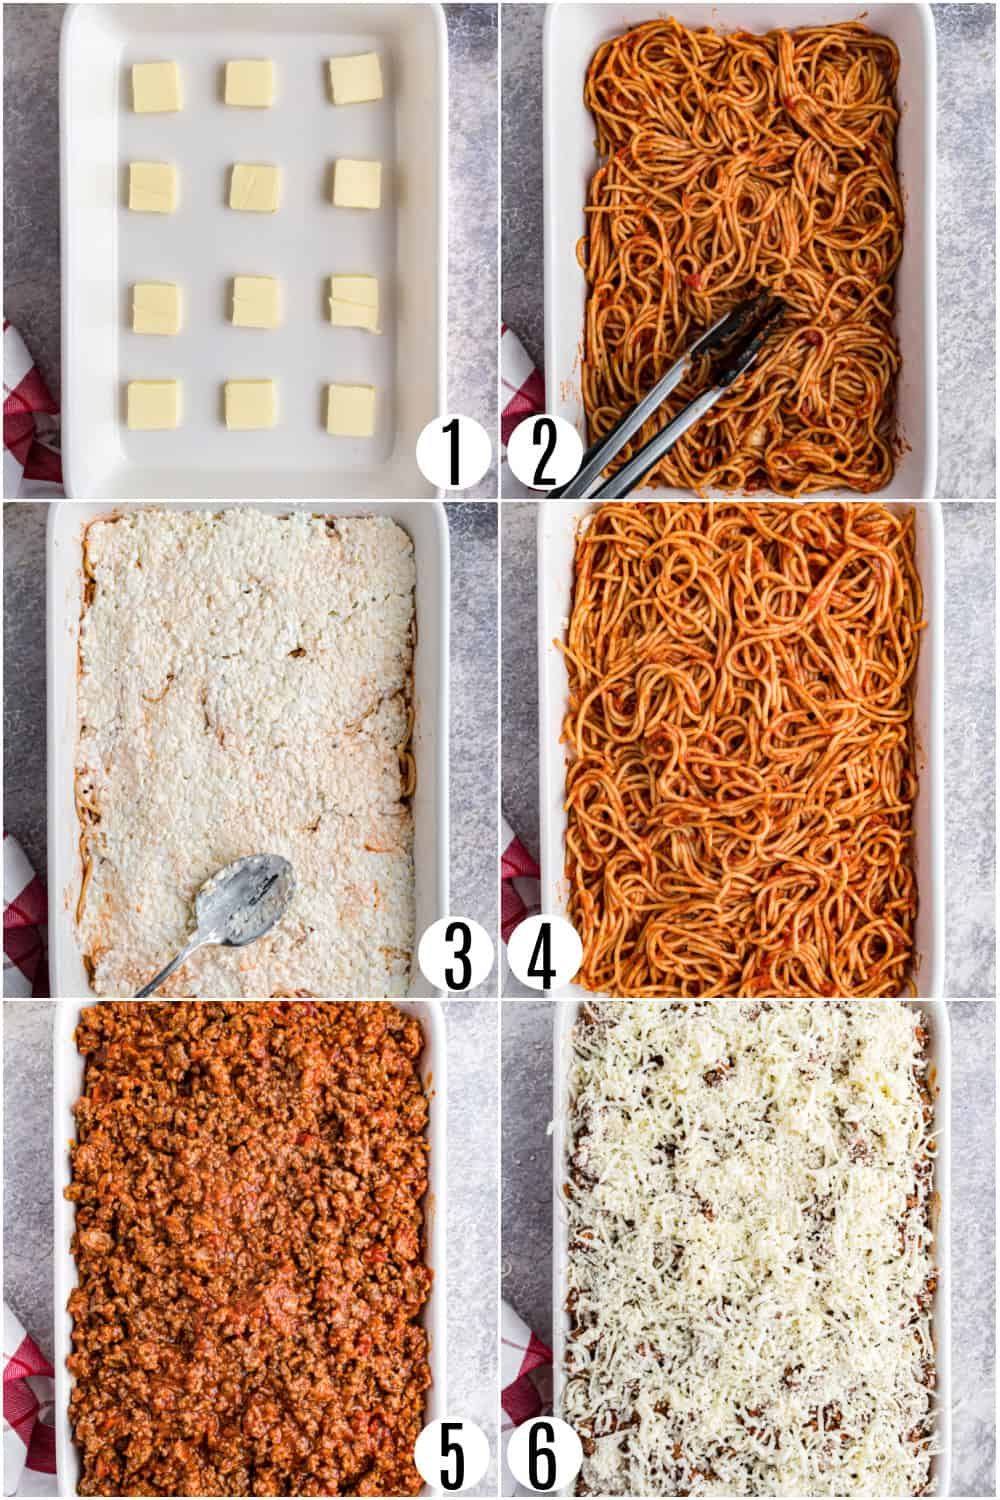 Step by step photos showing how to assemble spaghetti casserole.